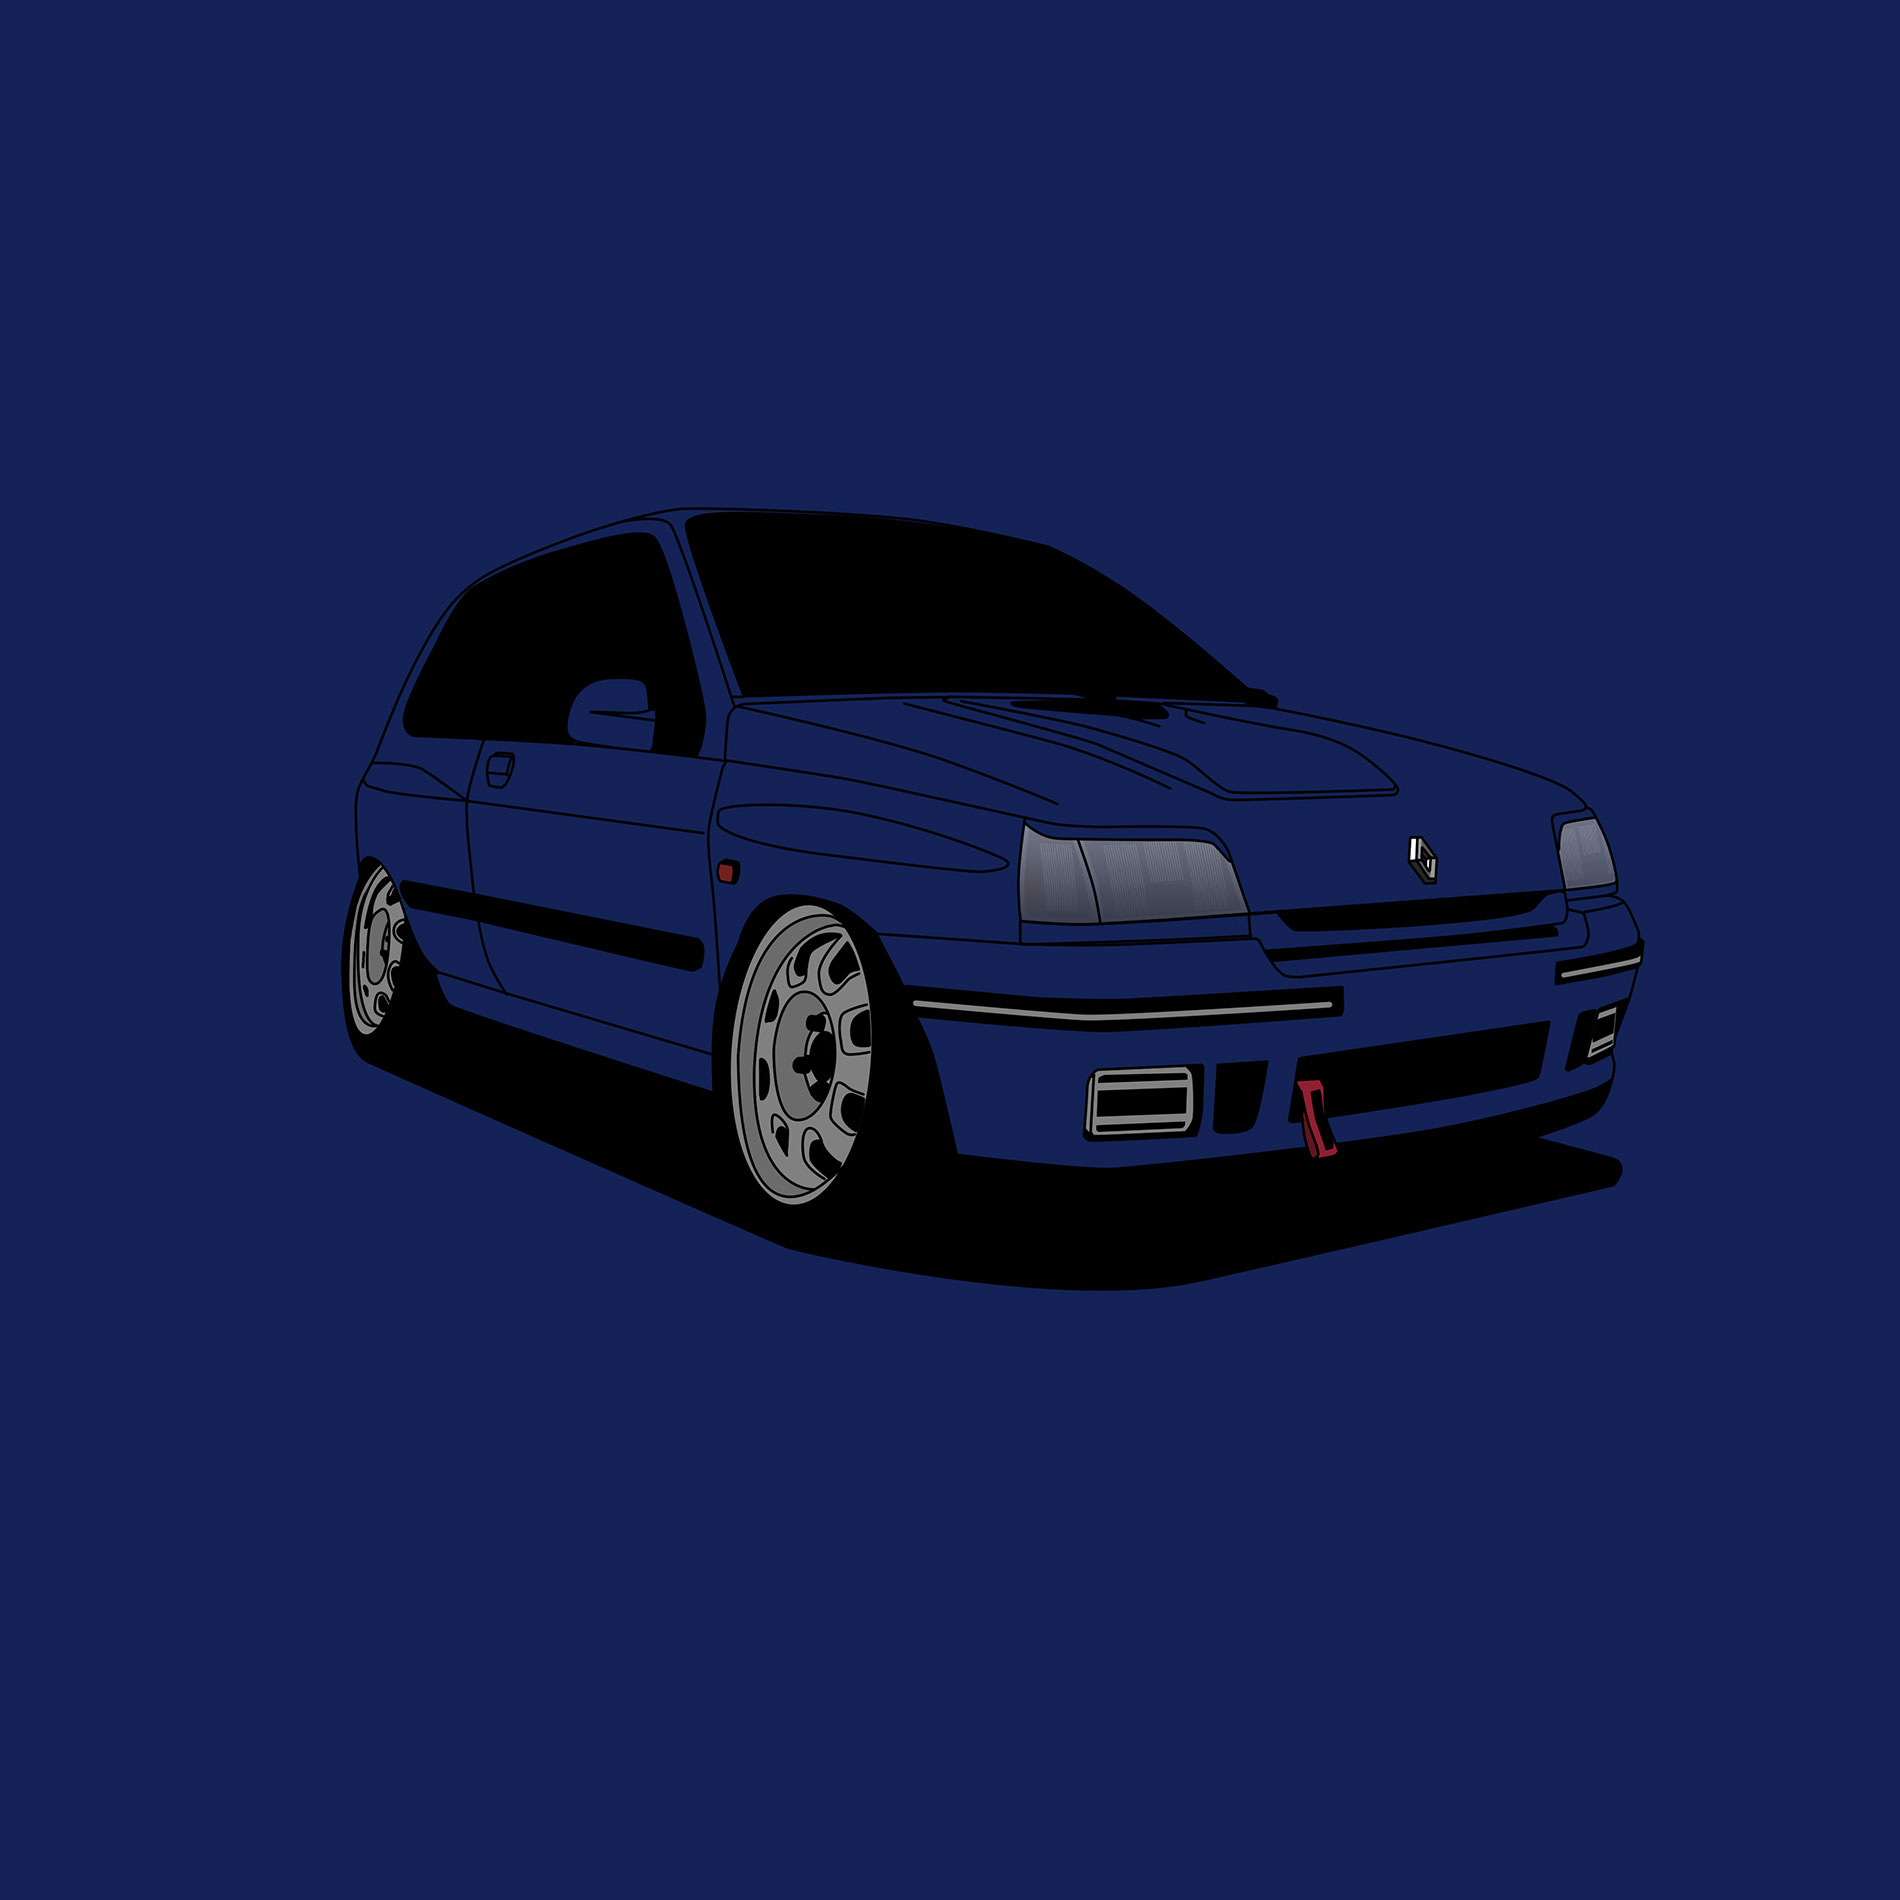 Renault Clio 1 16V - Cartoon by vtstegofo